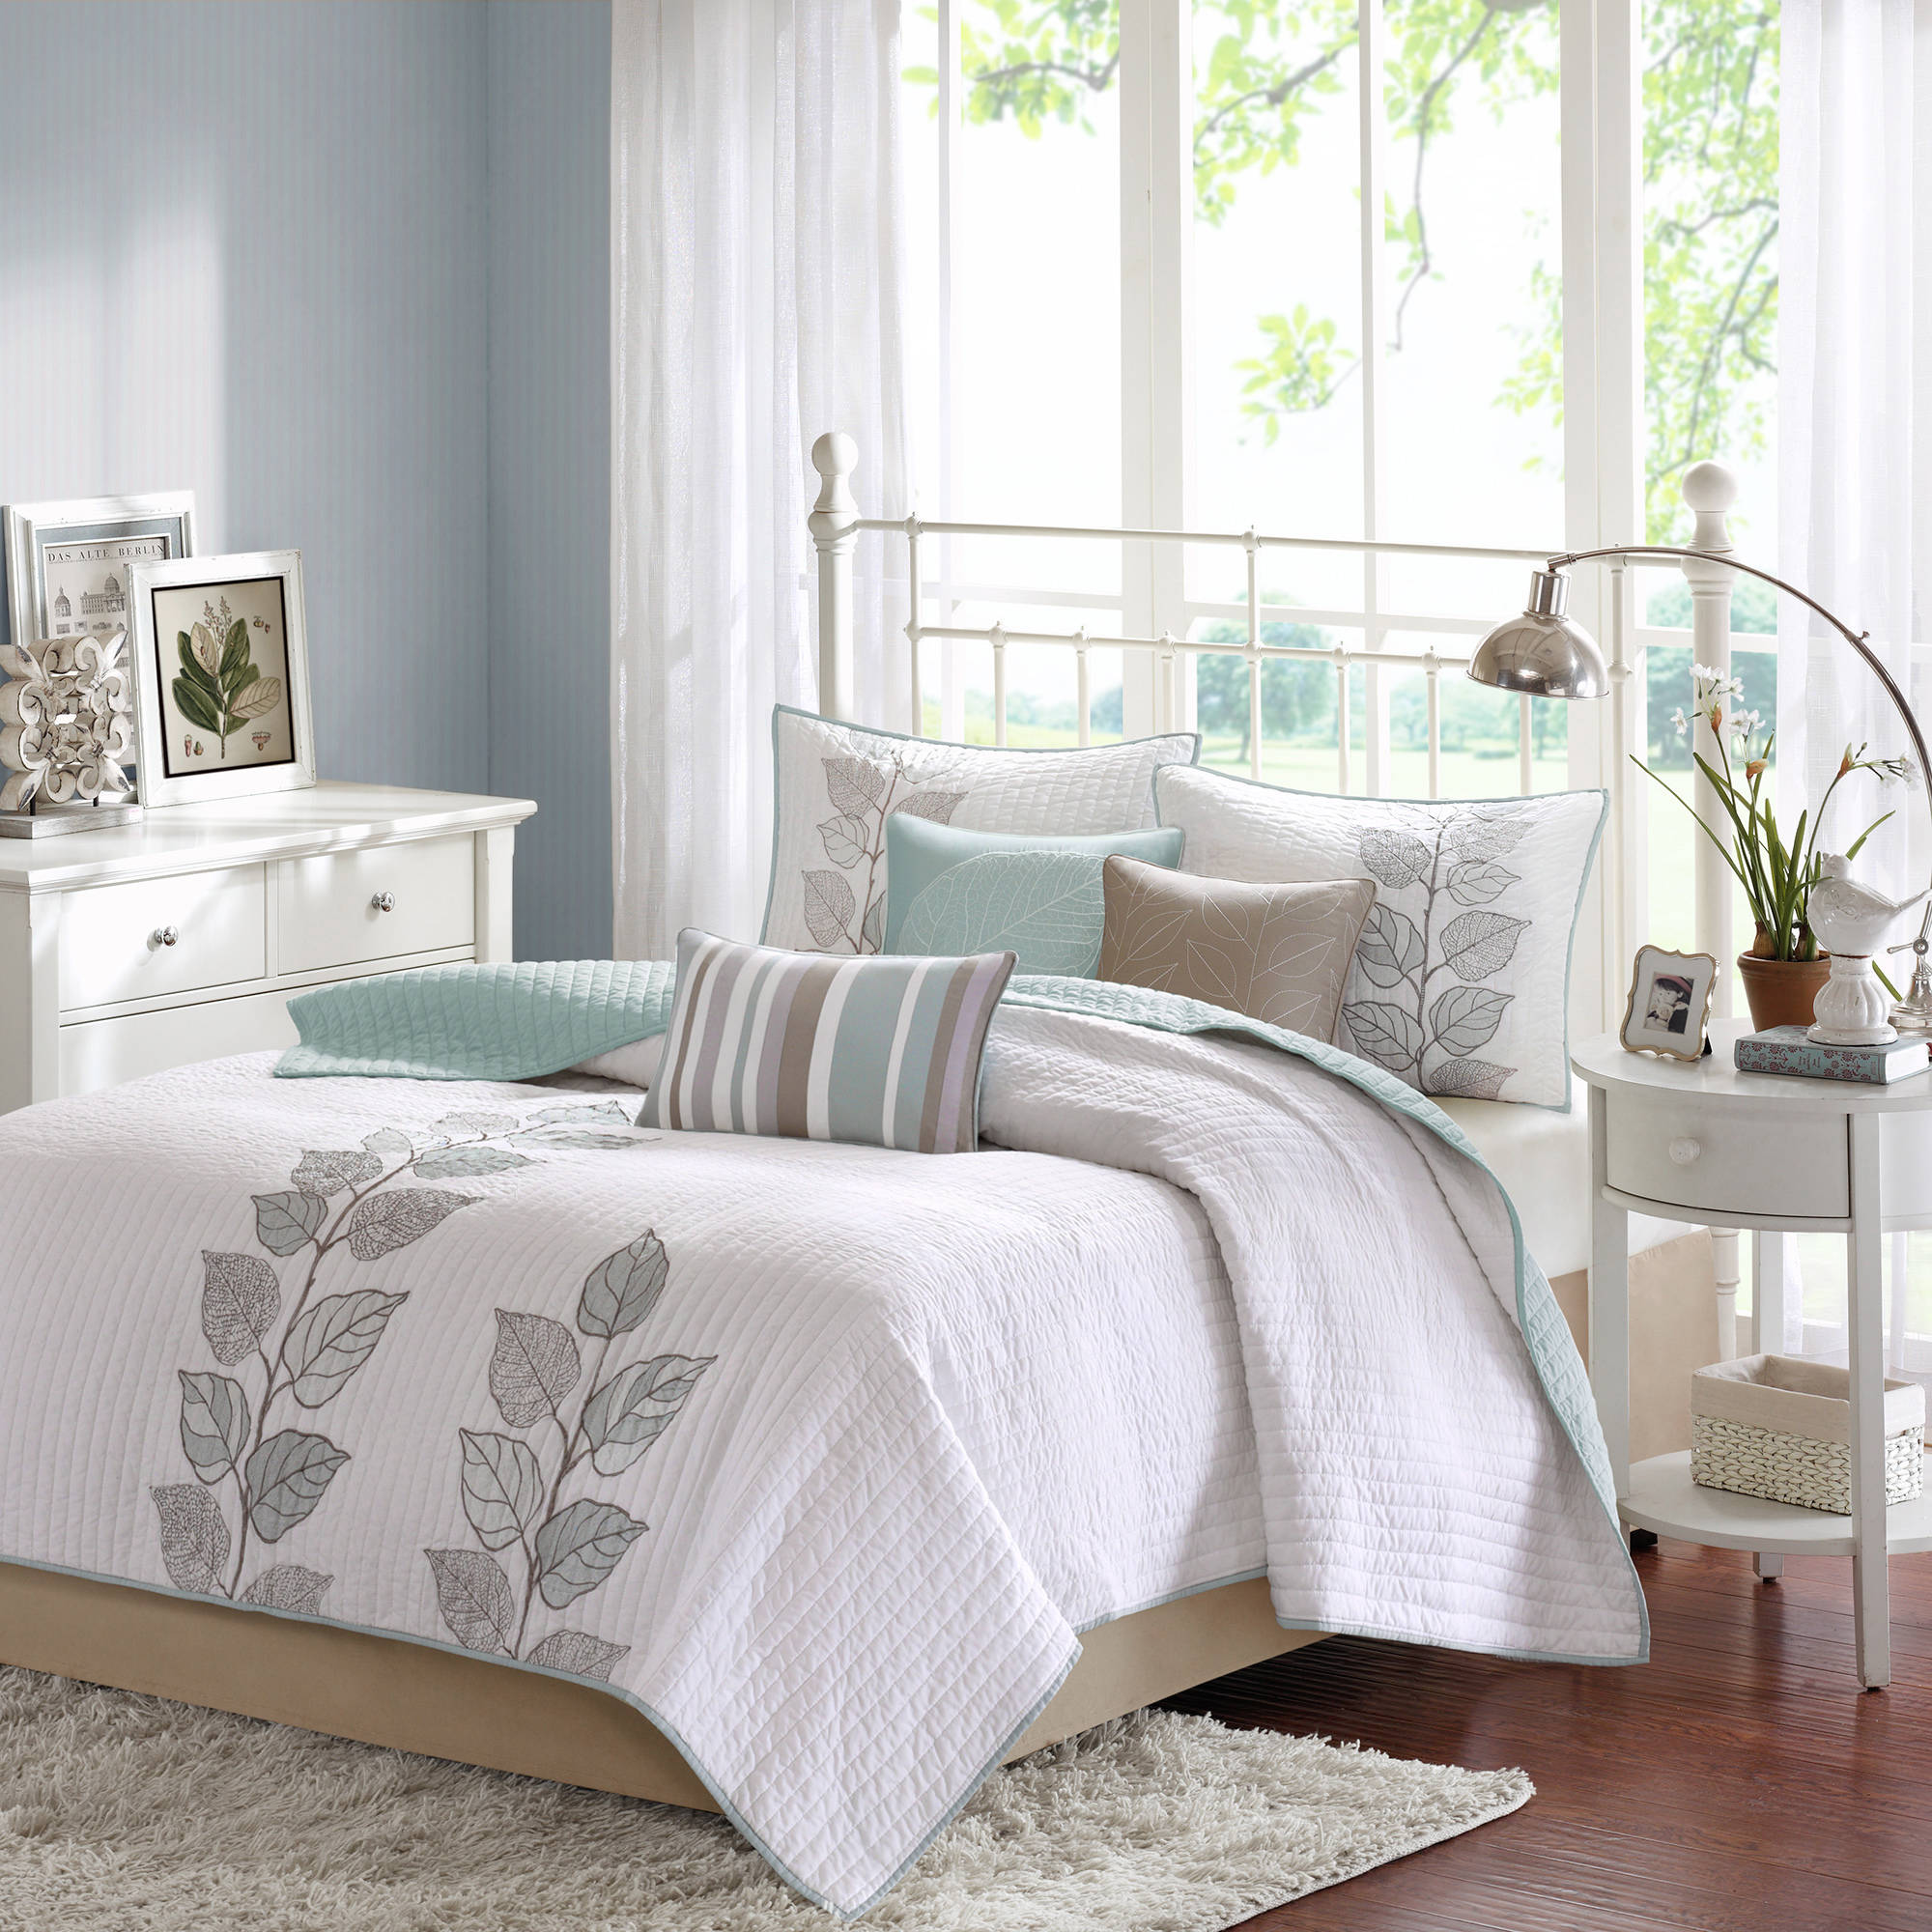 Home Essence Marissa Bedding Coverlet Set